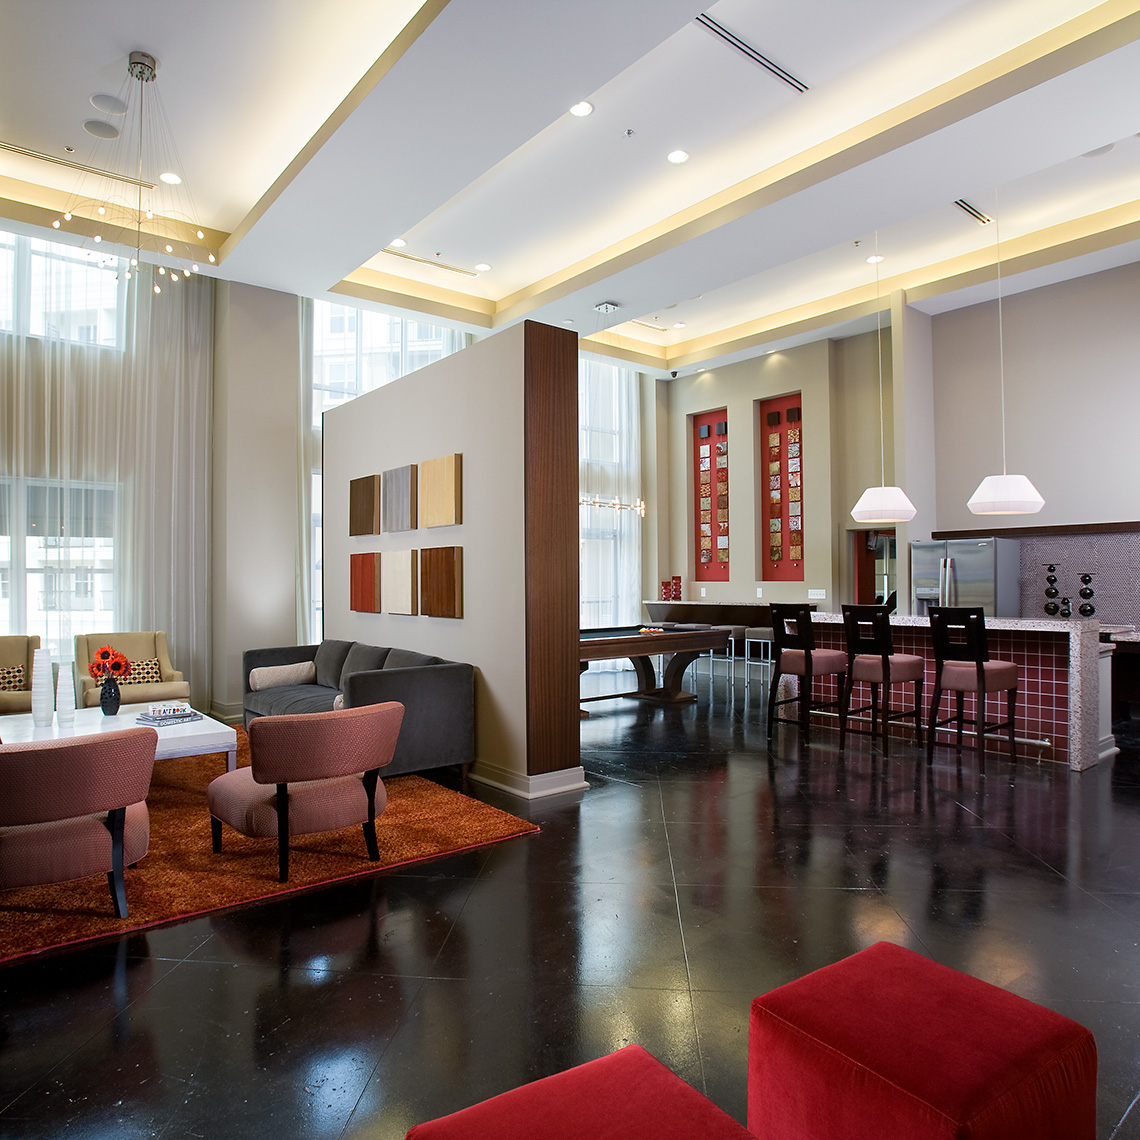 An interior view of the nicely appointed and welcoming Social Lounge at Goodwynn at Town Brookhaven